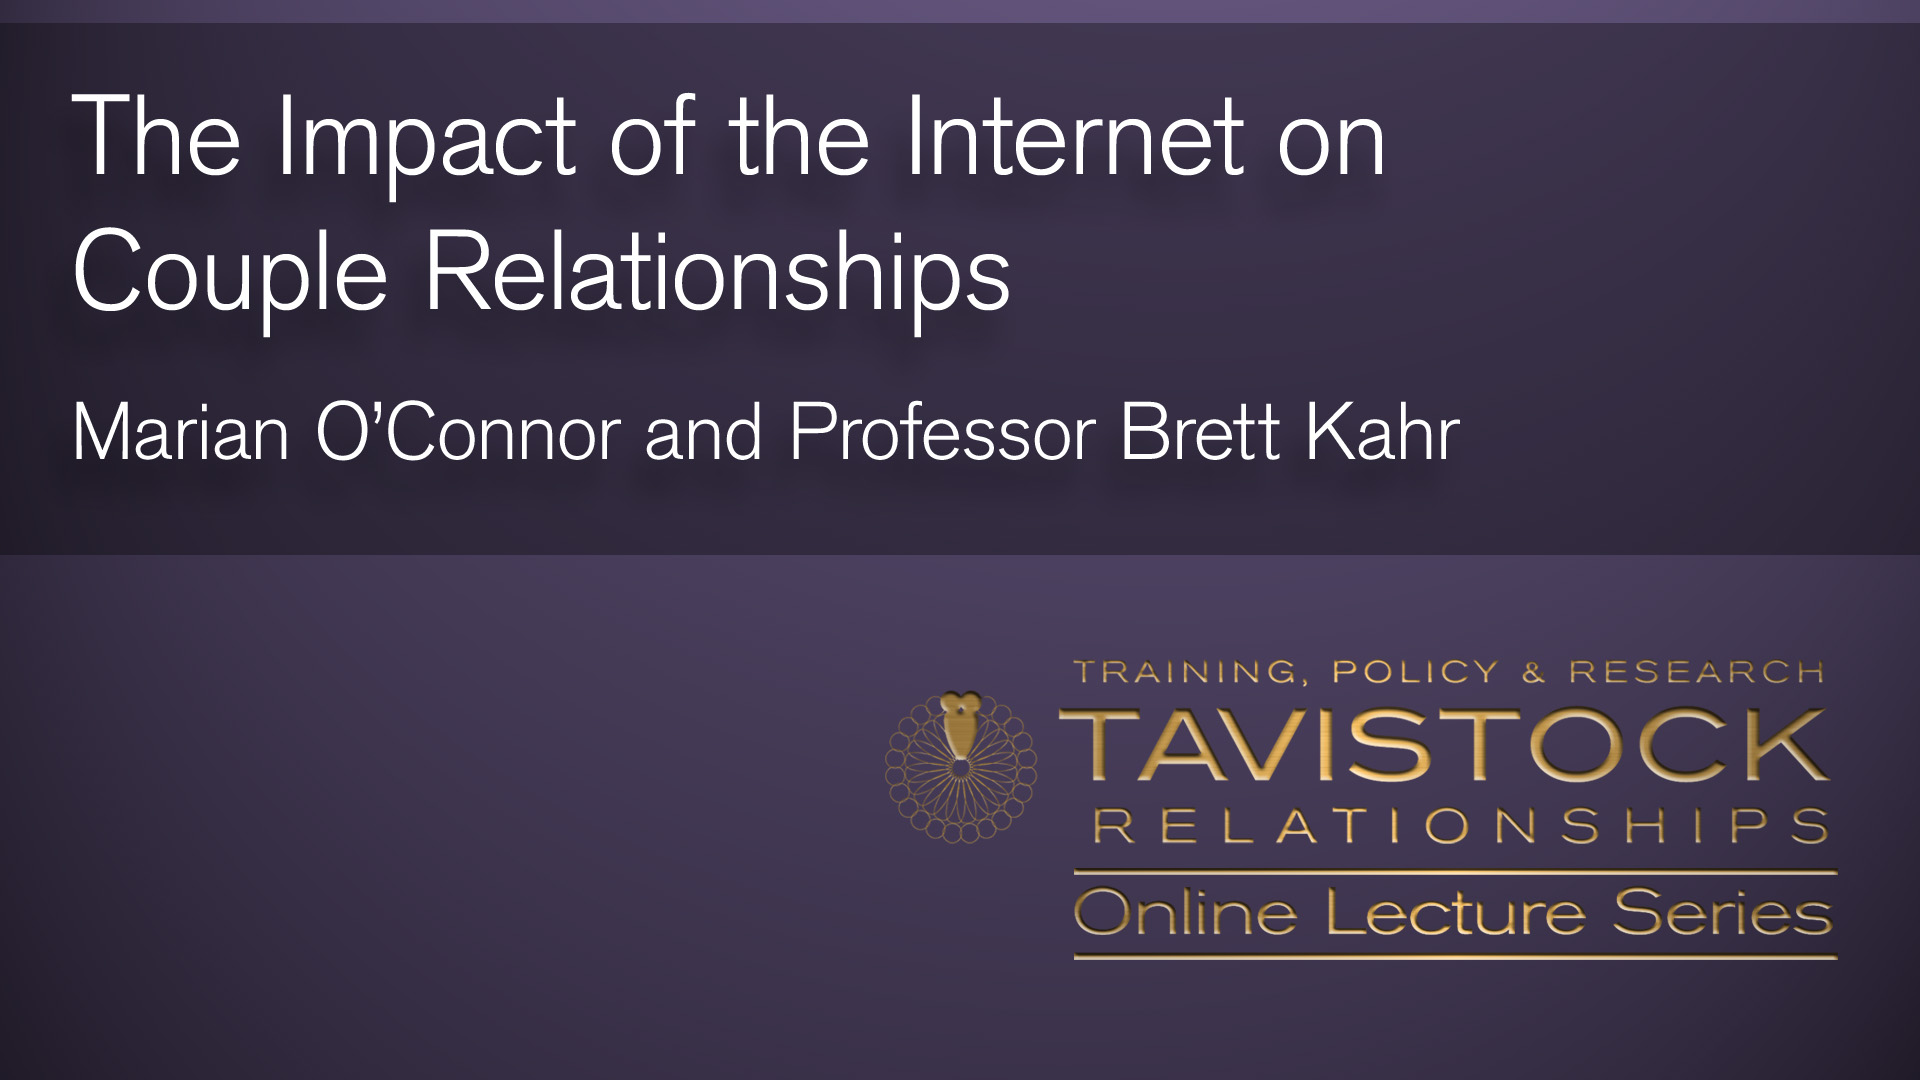 The Impact of The Internet on Couple Relationships Thumbnail